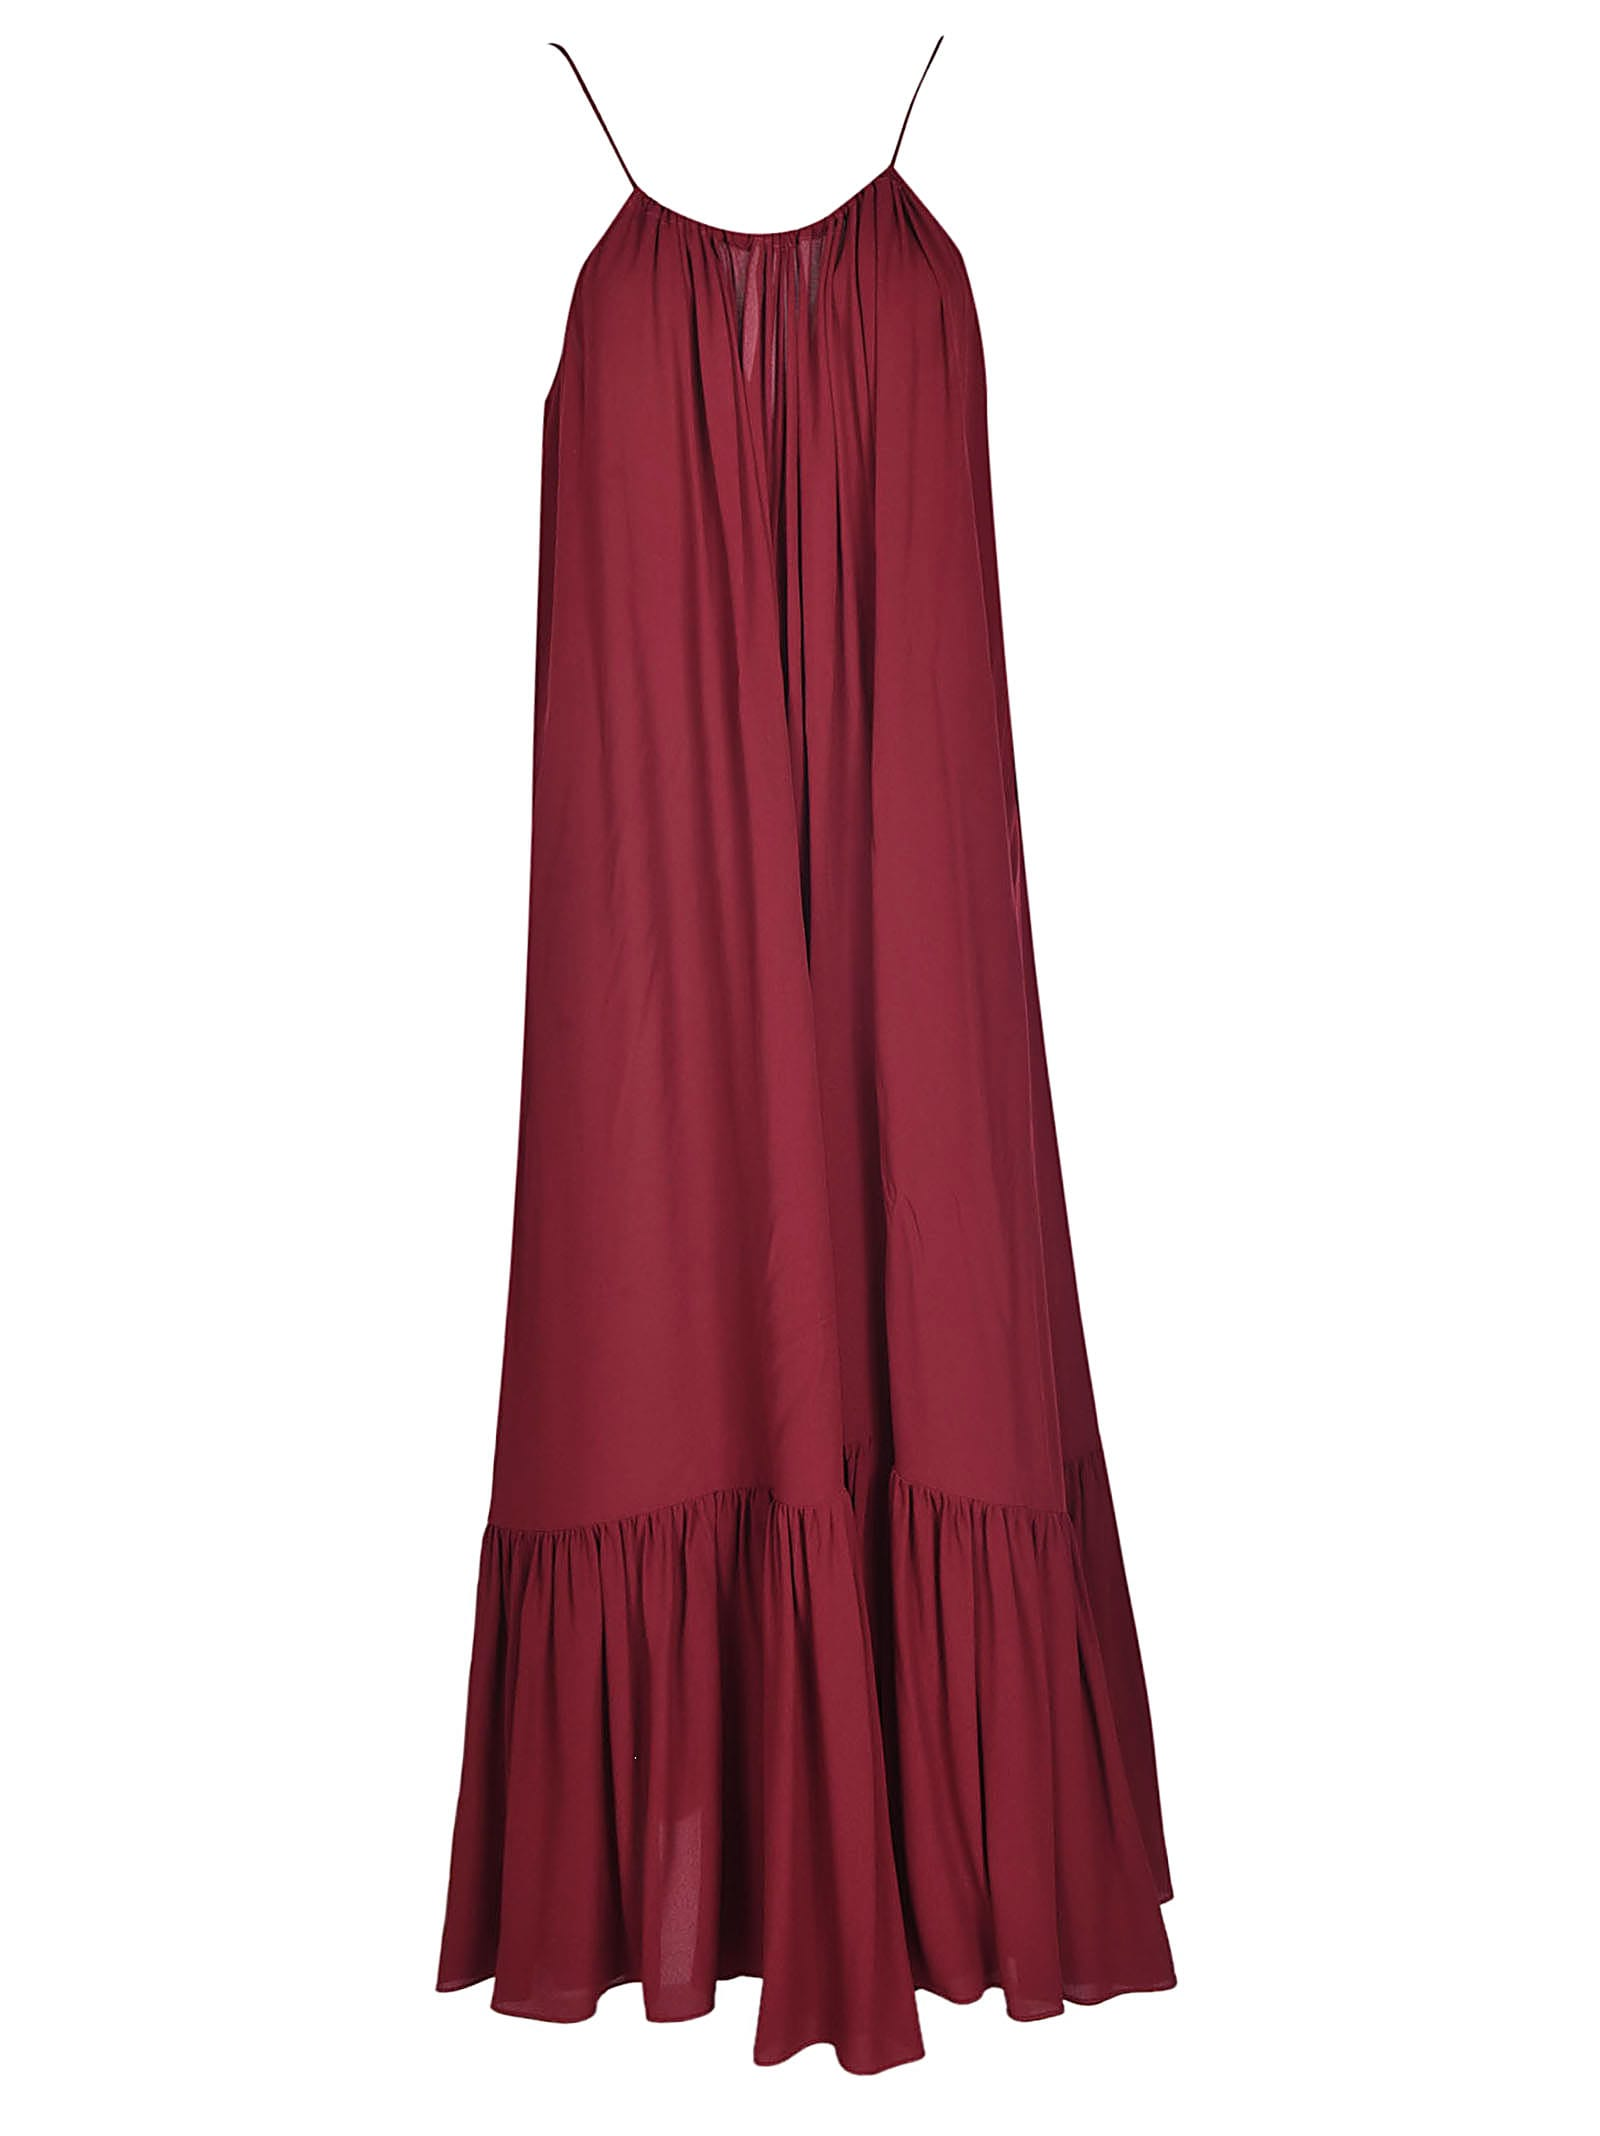 Erika Cavallini Pleated Maxi Dress